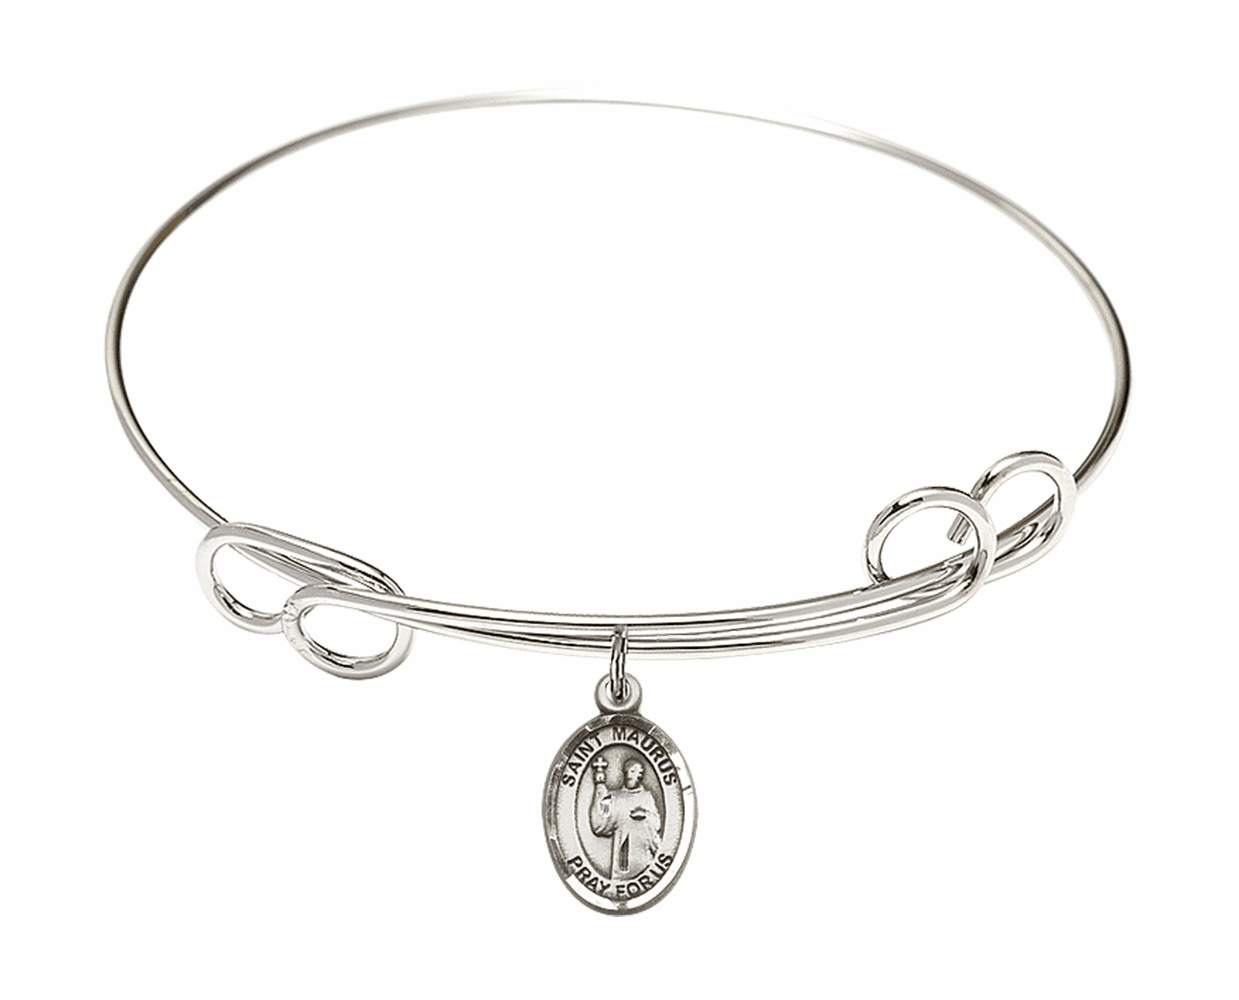 Round Loop St Maurus Bangle Charm Bracelet by Bliss